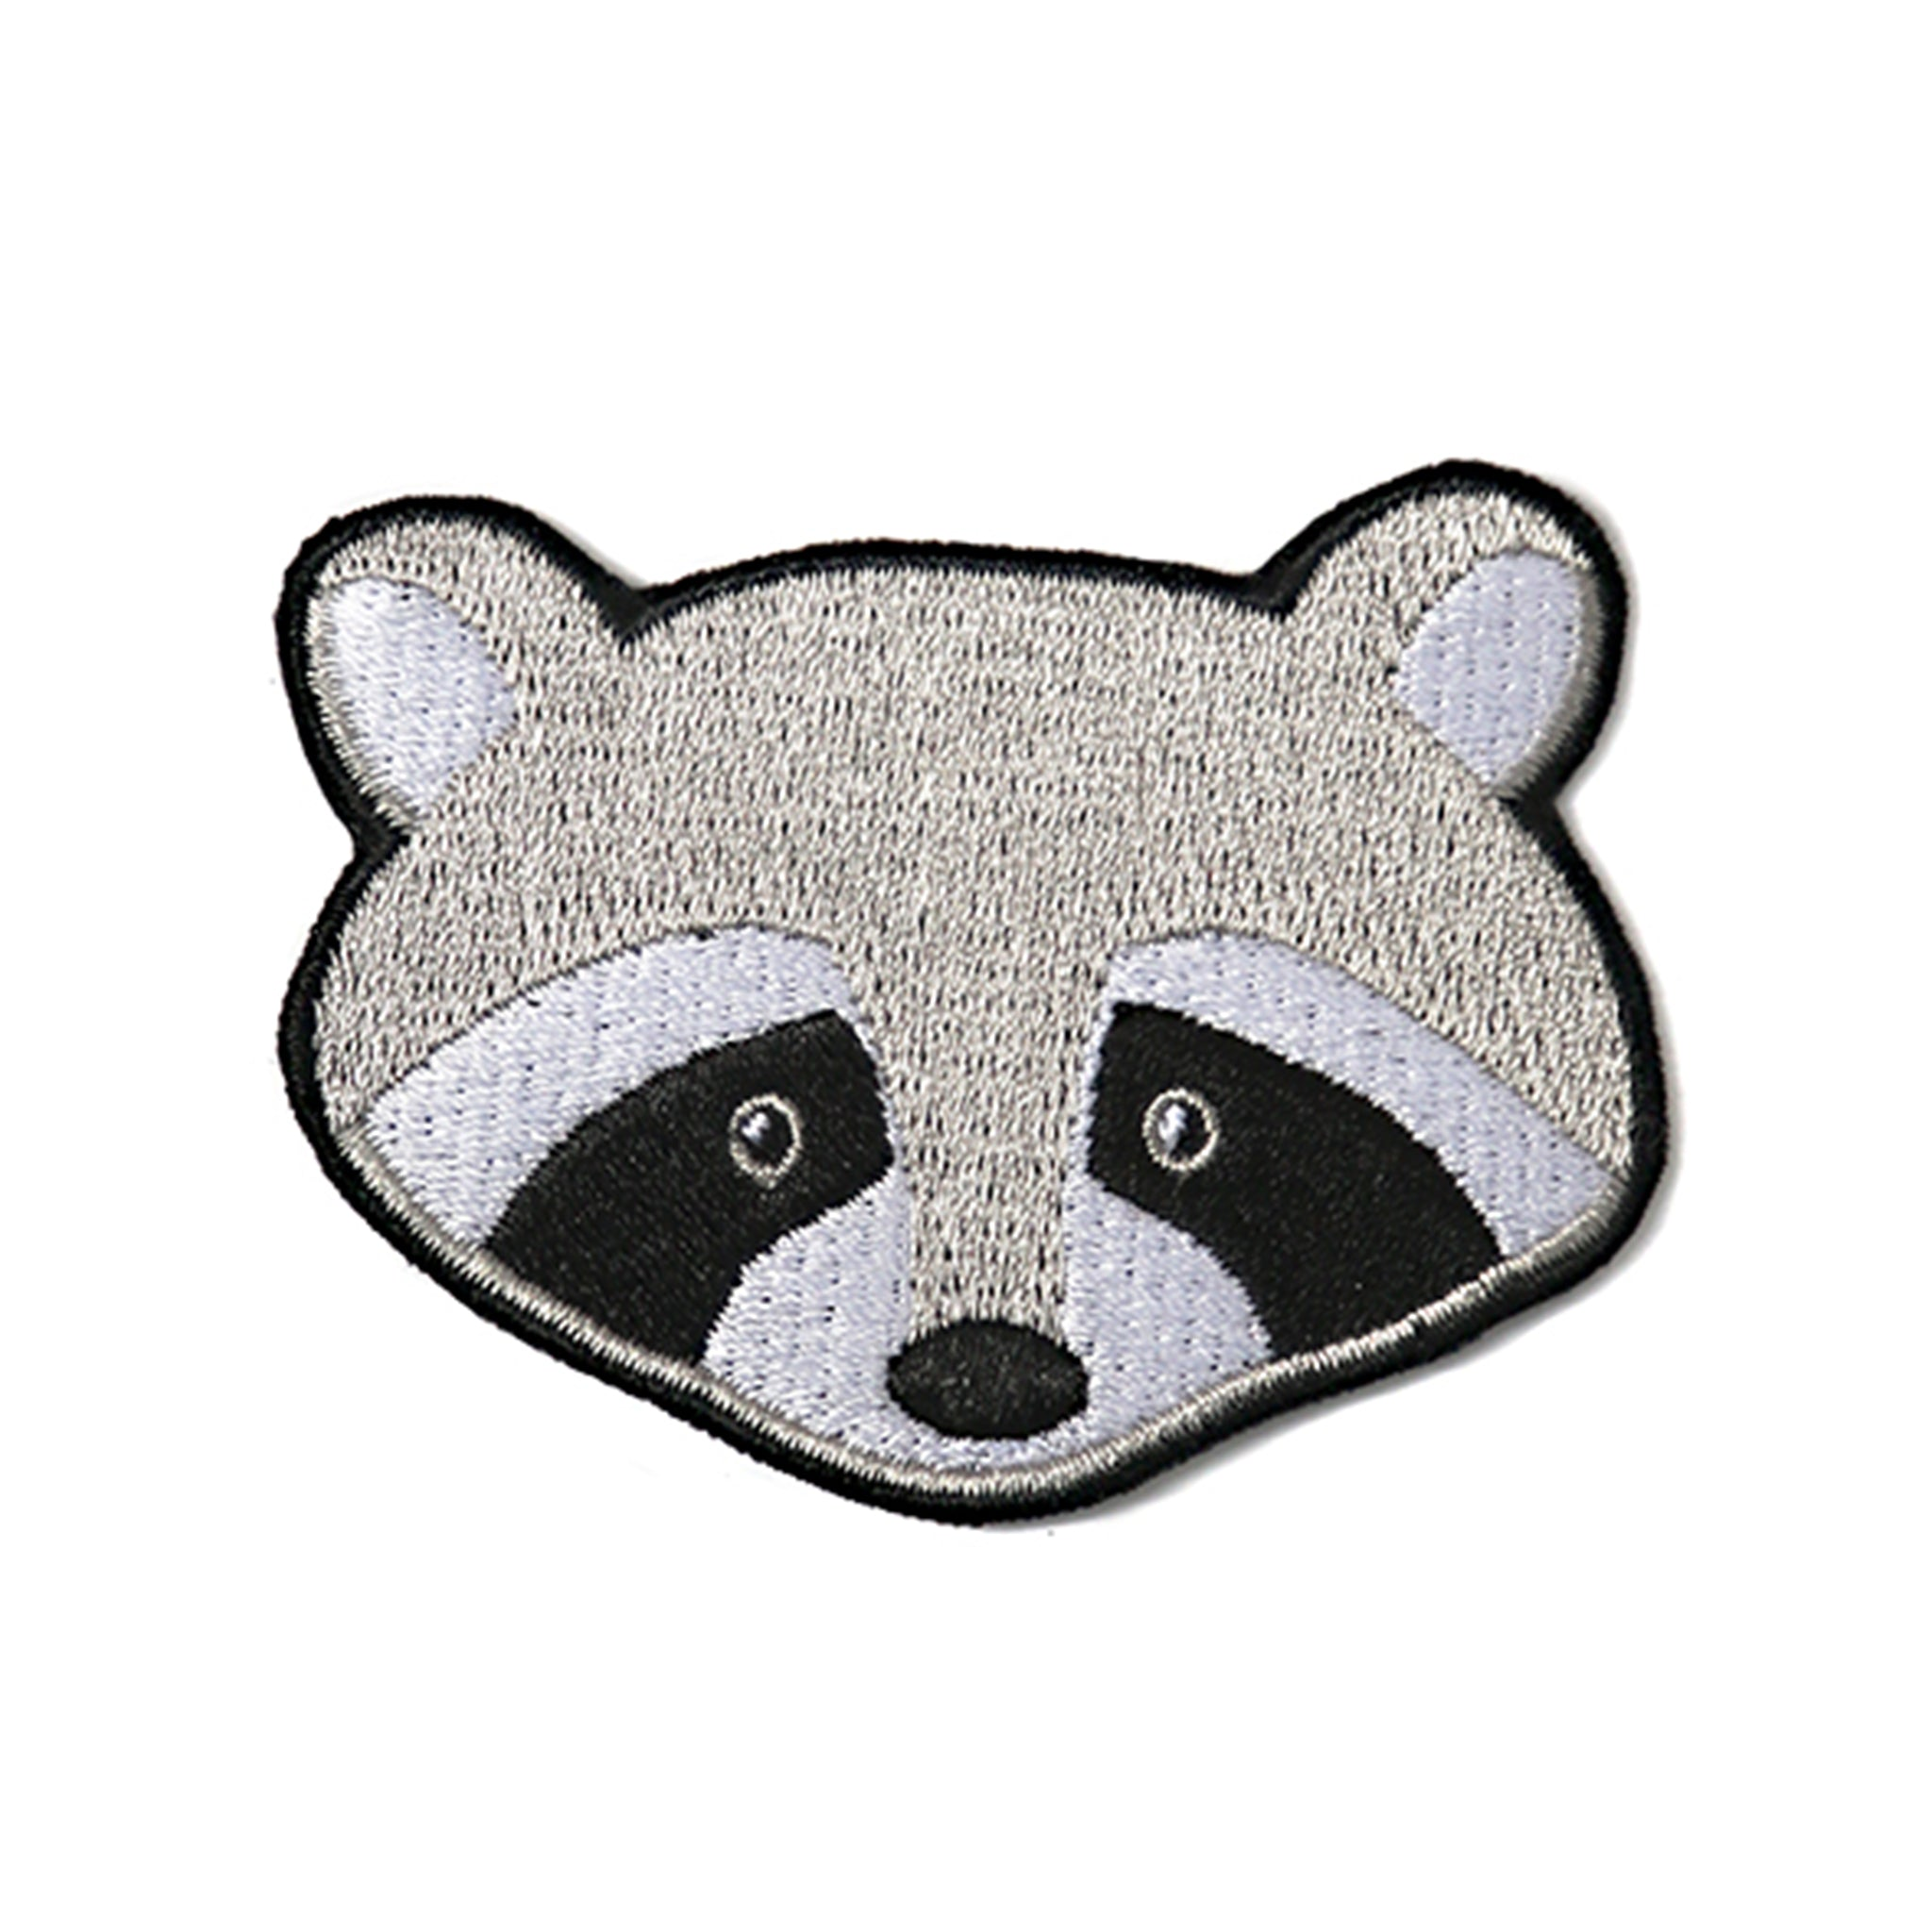 Trash Panda Head Patch